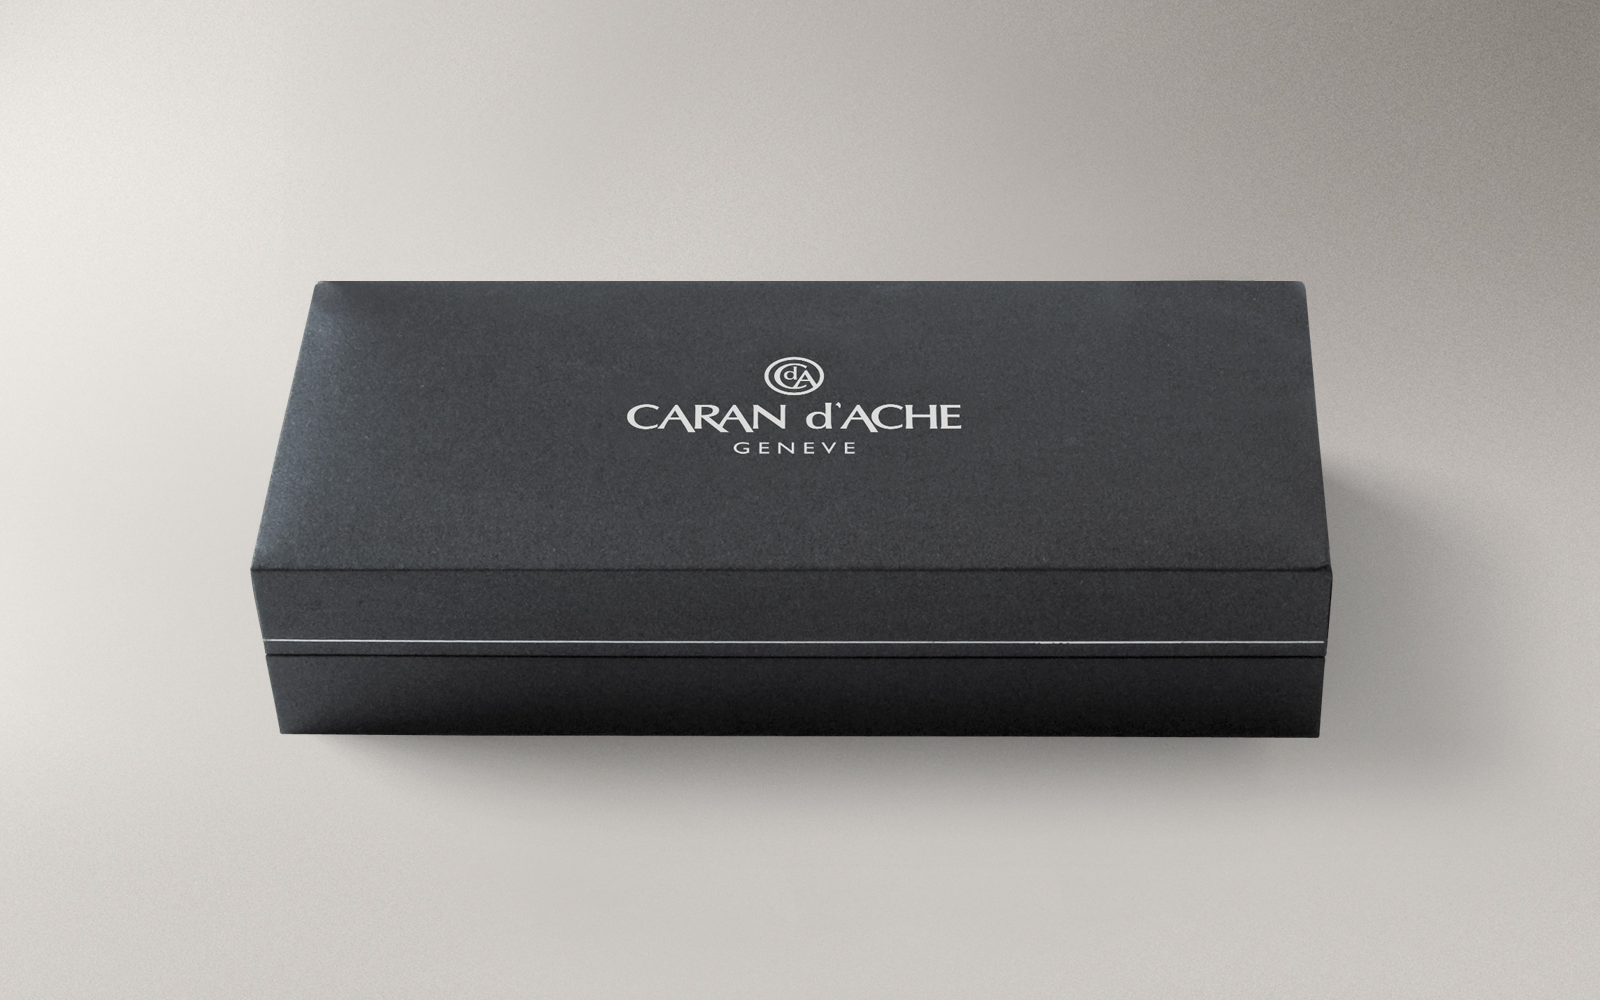 Carandache Madison - Bicolor Black SP, перьевая ручка, F